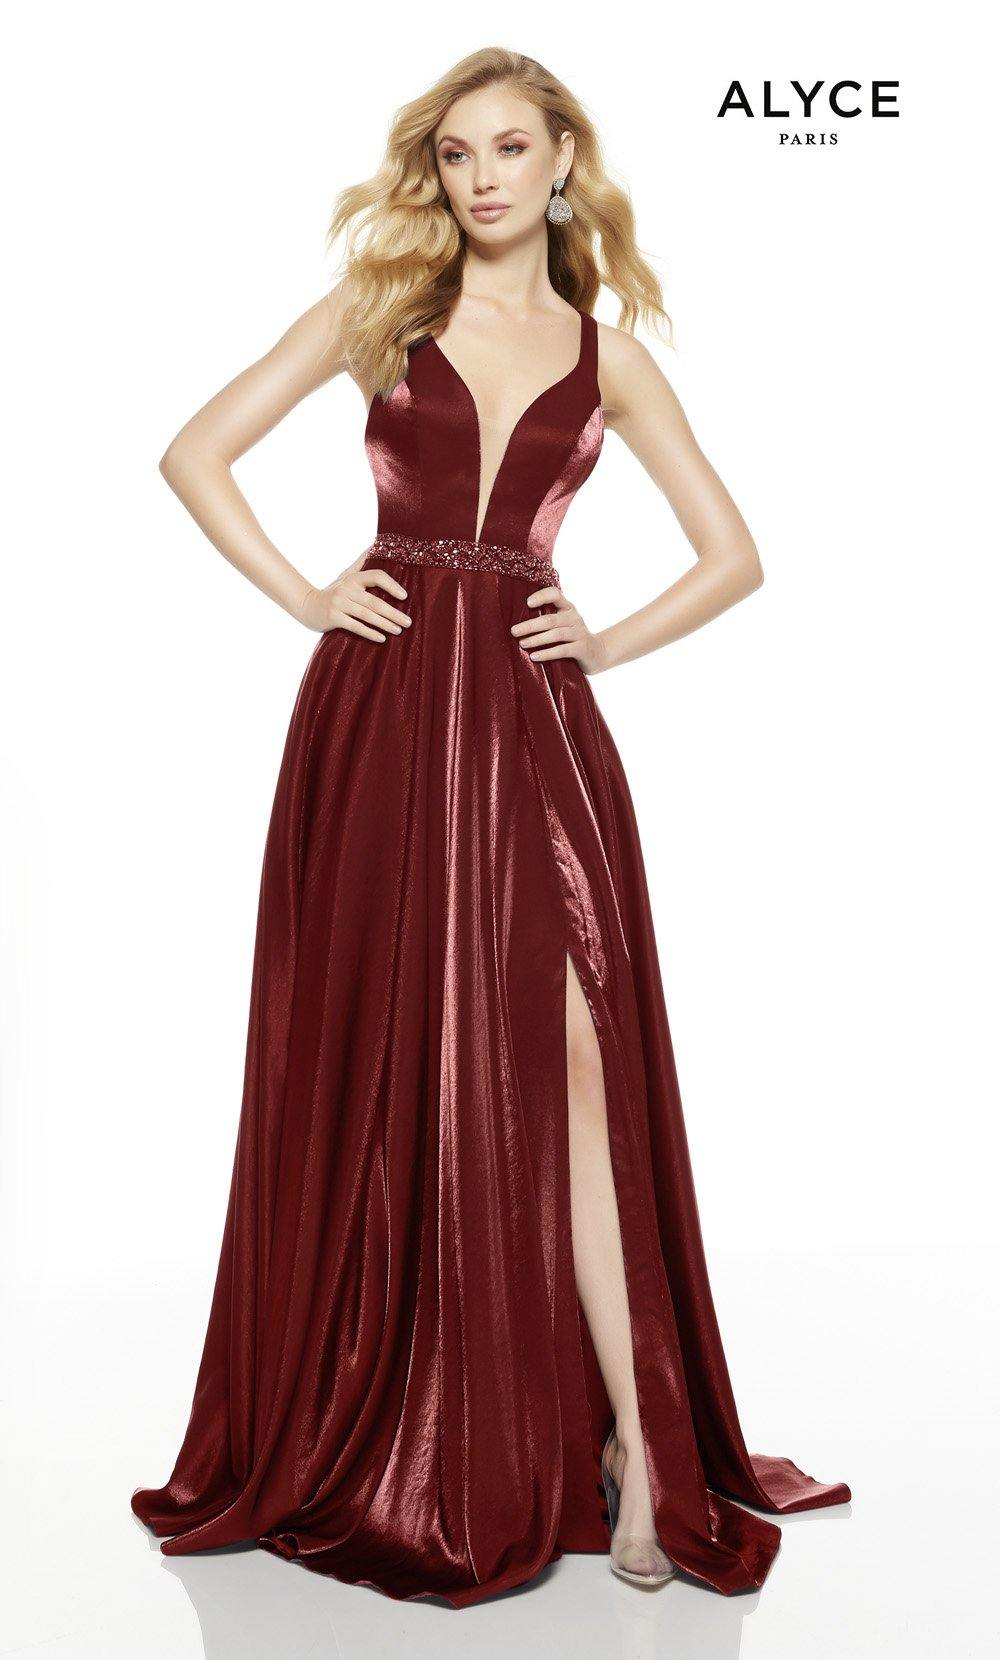 Wine prom dress with a slit and plunging neckline